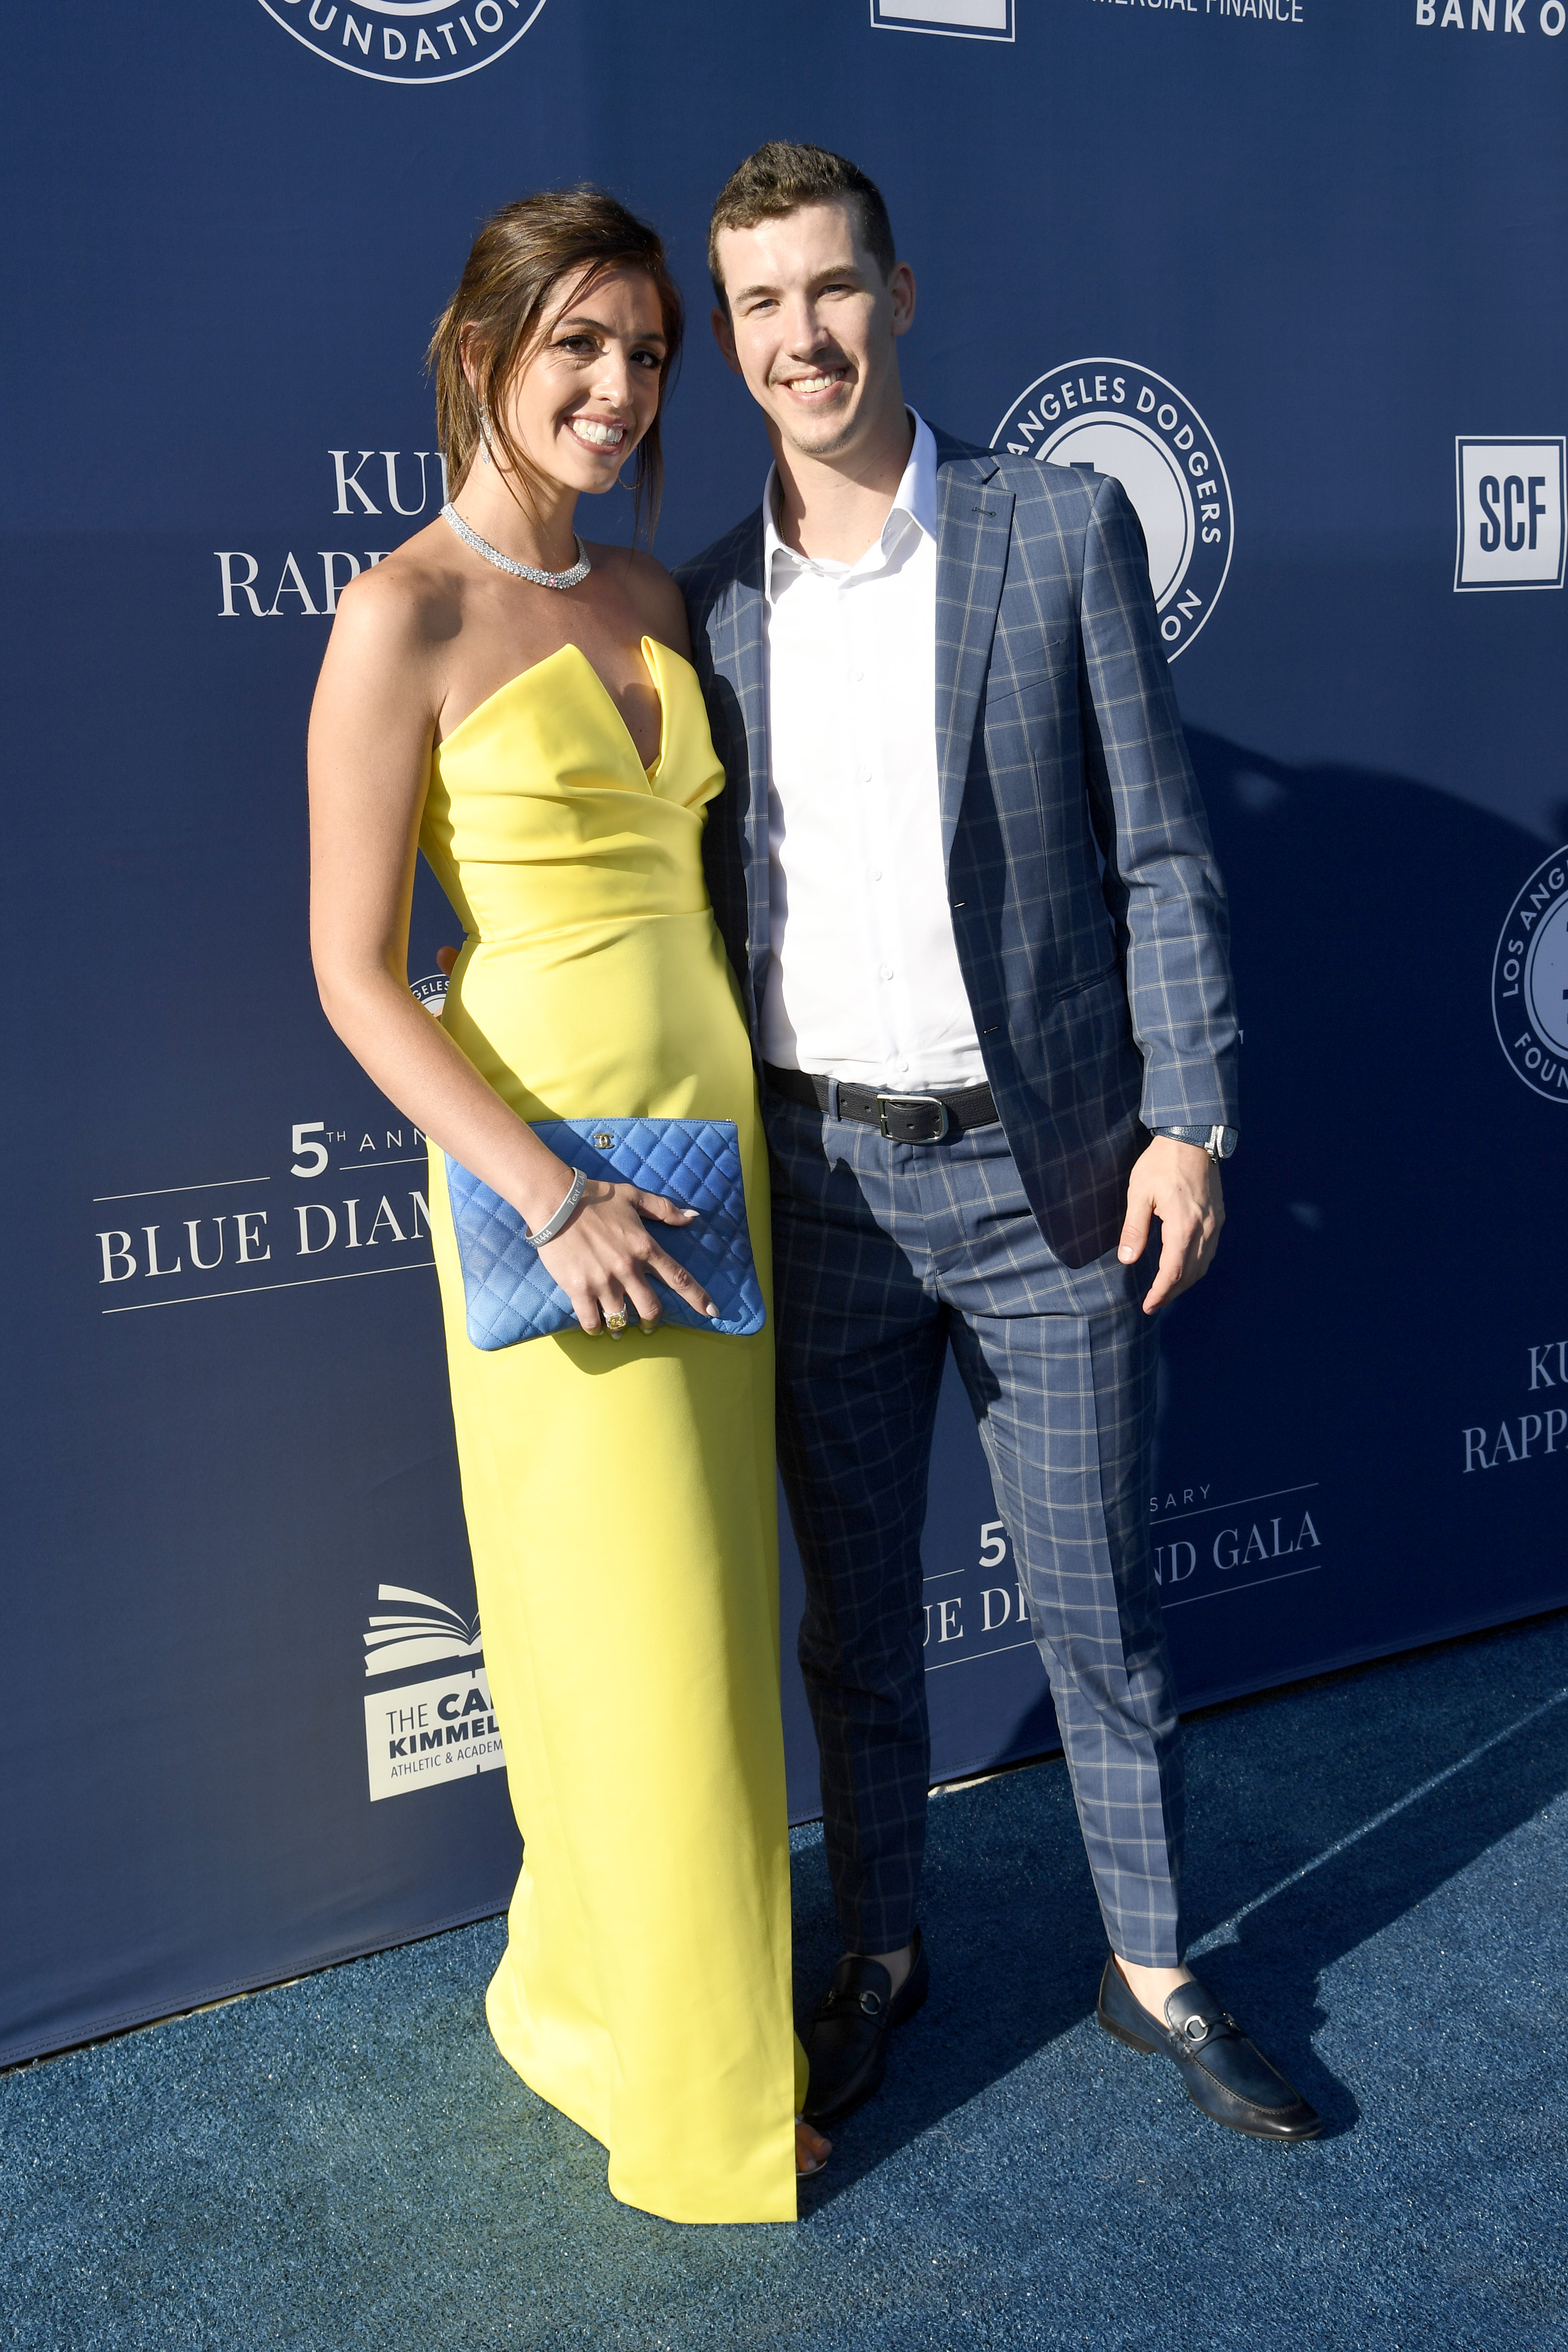 2019 MLB All-Star Game: Dodgers on the red carpet - True Blue LA